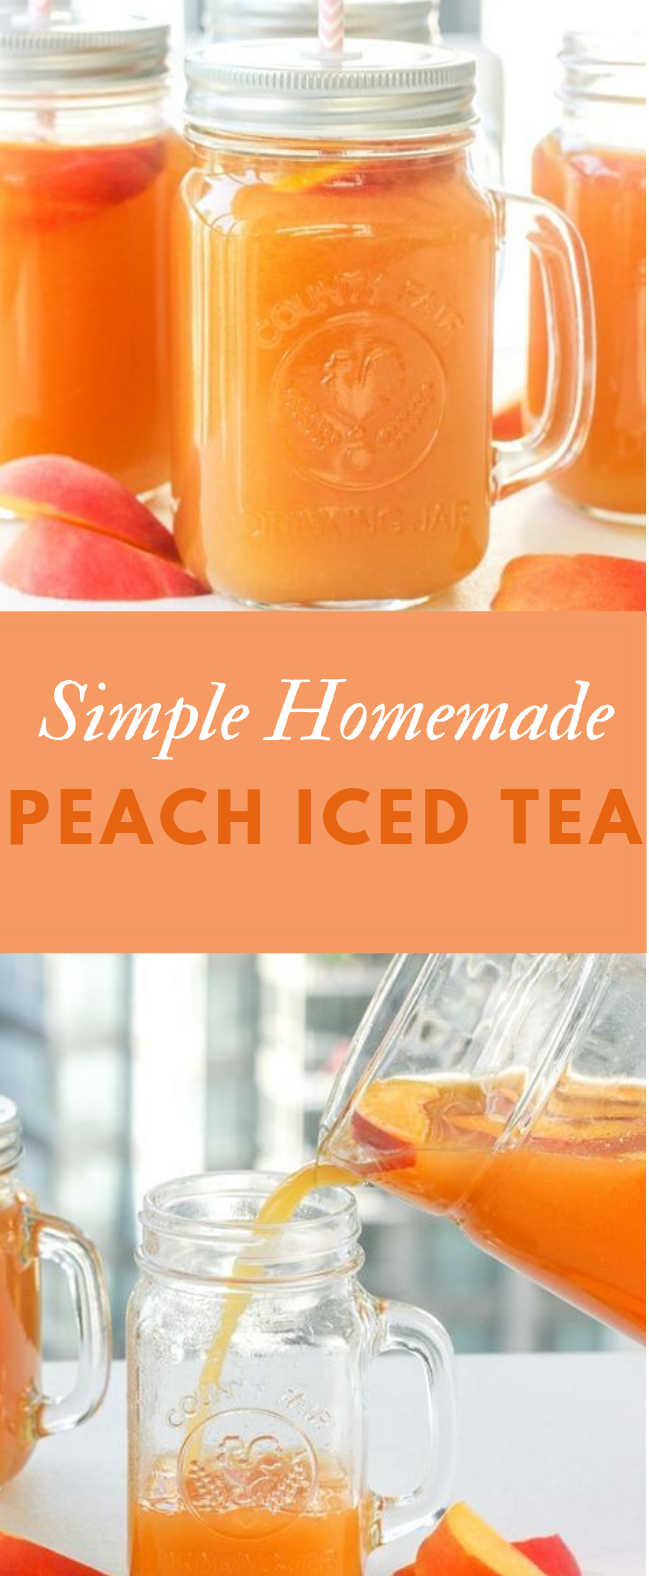 SIMPLE HOMEMADE PEACH ICED TEA #drink #fresh drinks